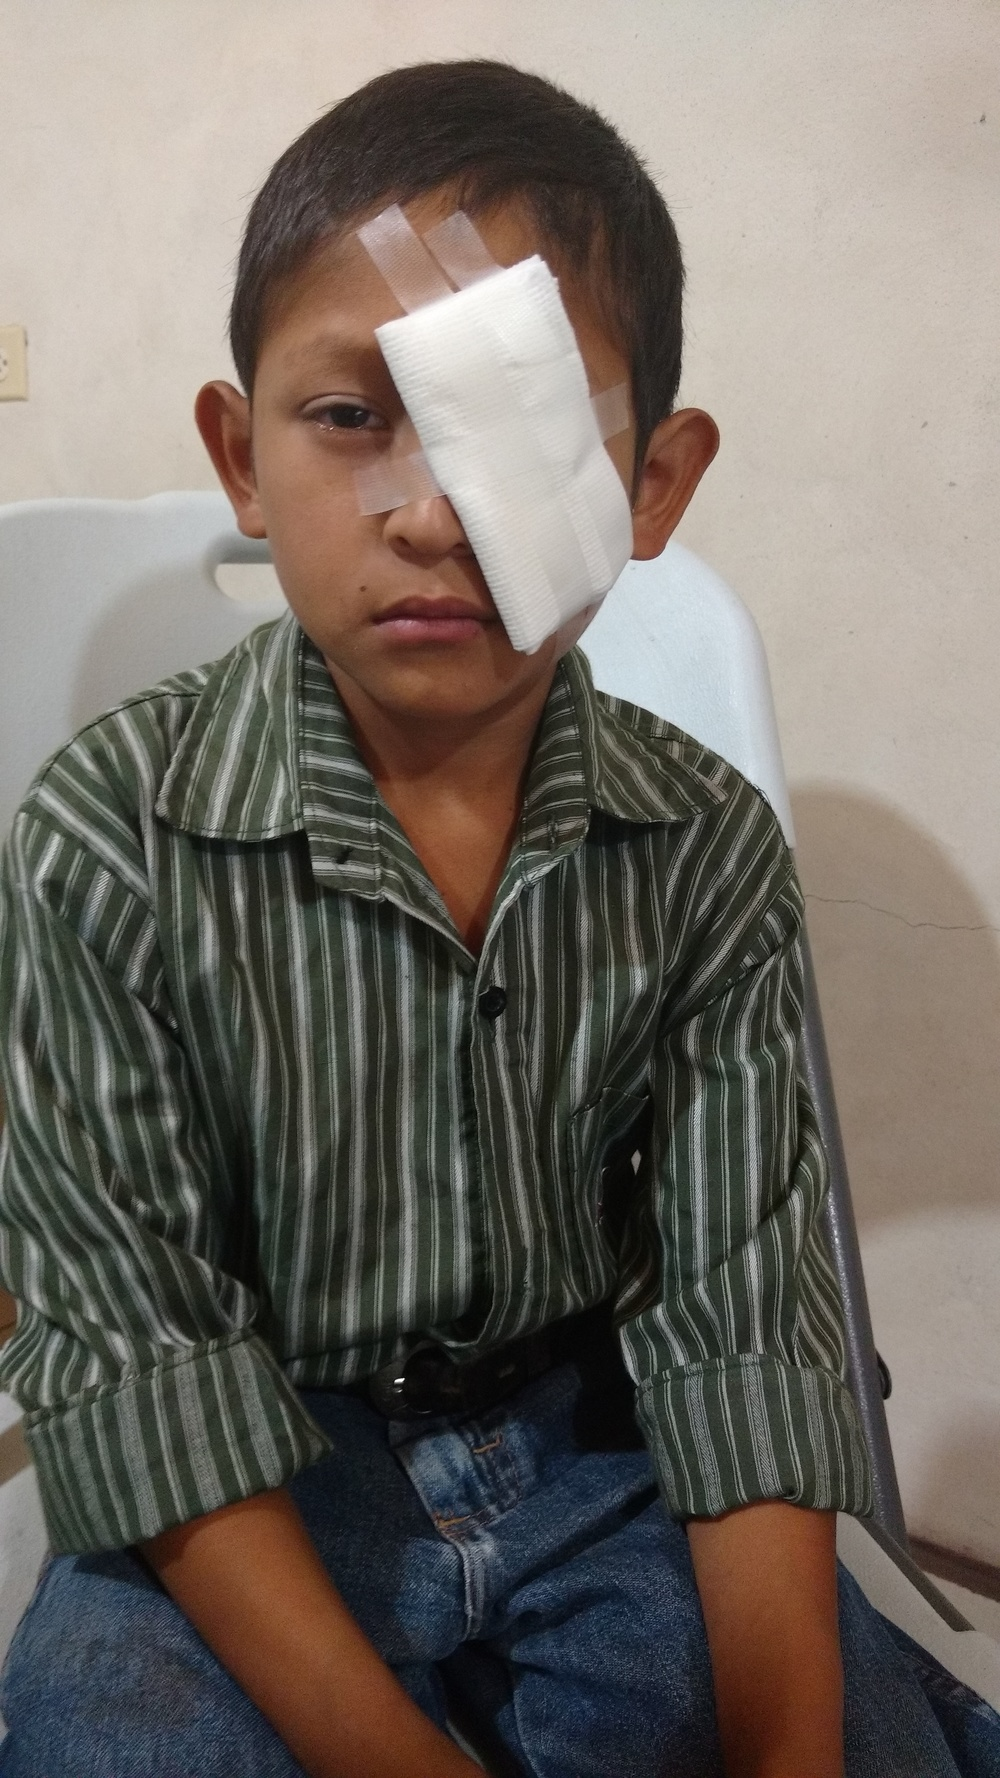 This young man was referred for urgent Ophalmology assessment after an injury to his eye. We made him an eye patch, as he had become very sensitive to light.